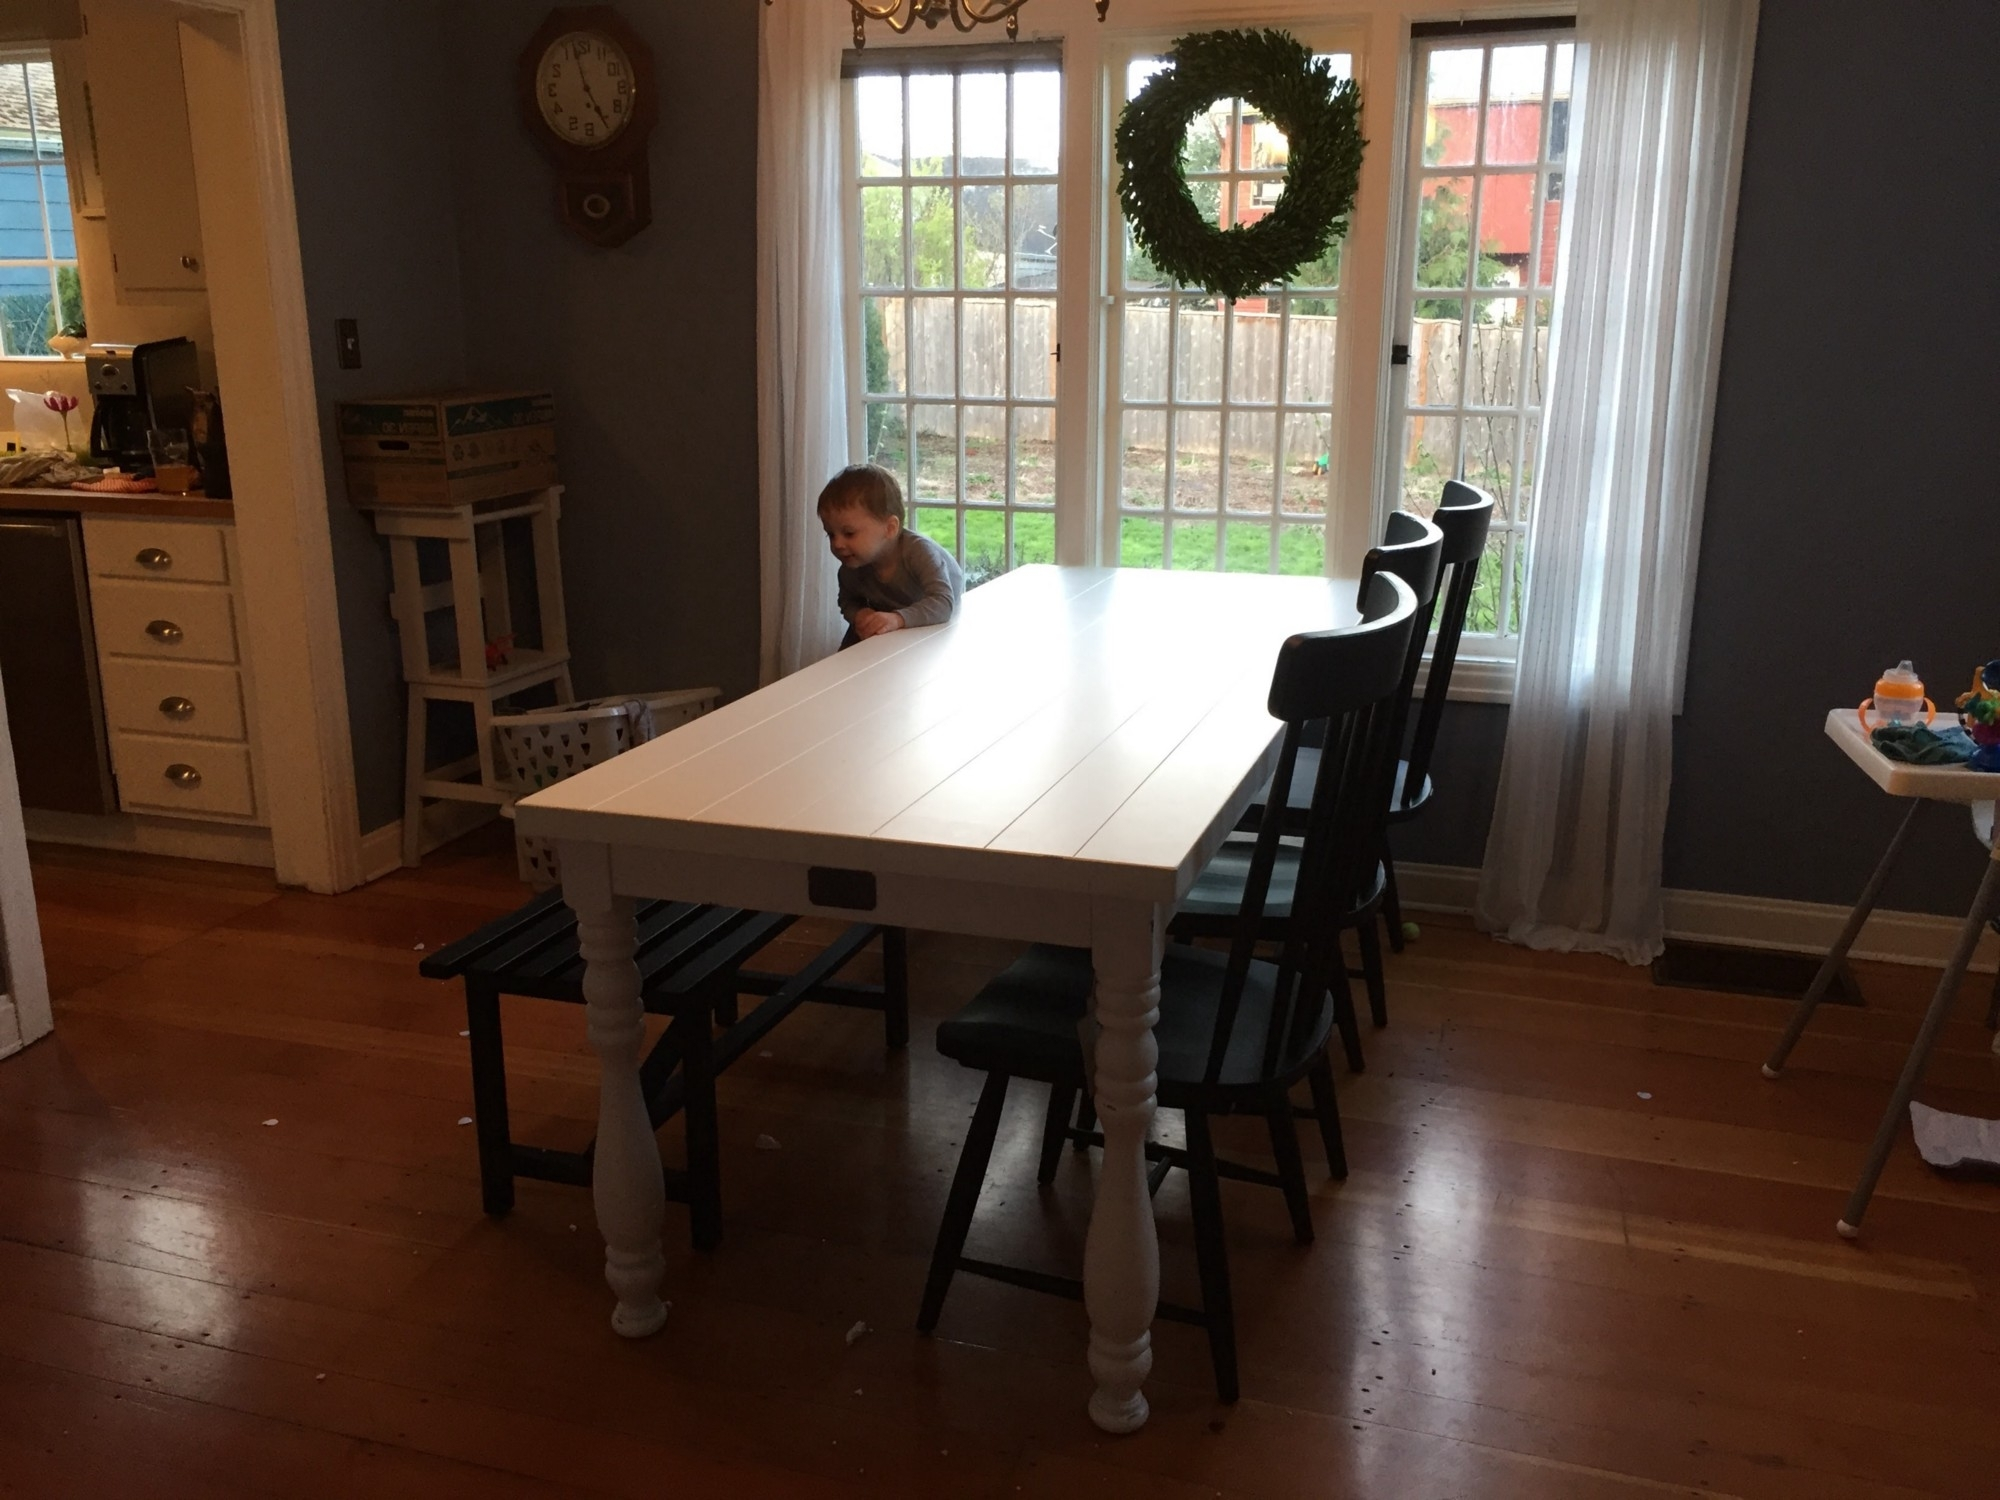 Magnolia Home Sawbuck Dining Tables Inside Favorite Joanna Gaines' Magnolia Home Furniture Line — A Review (View 9 of 25)